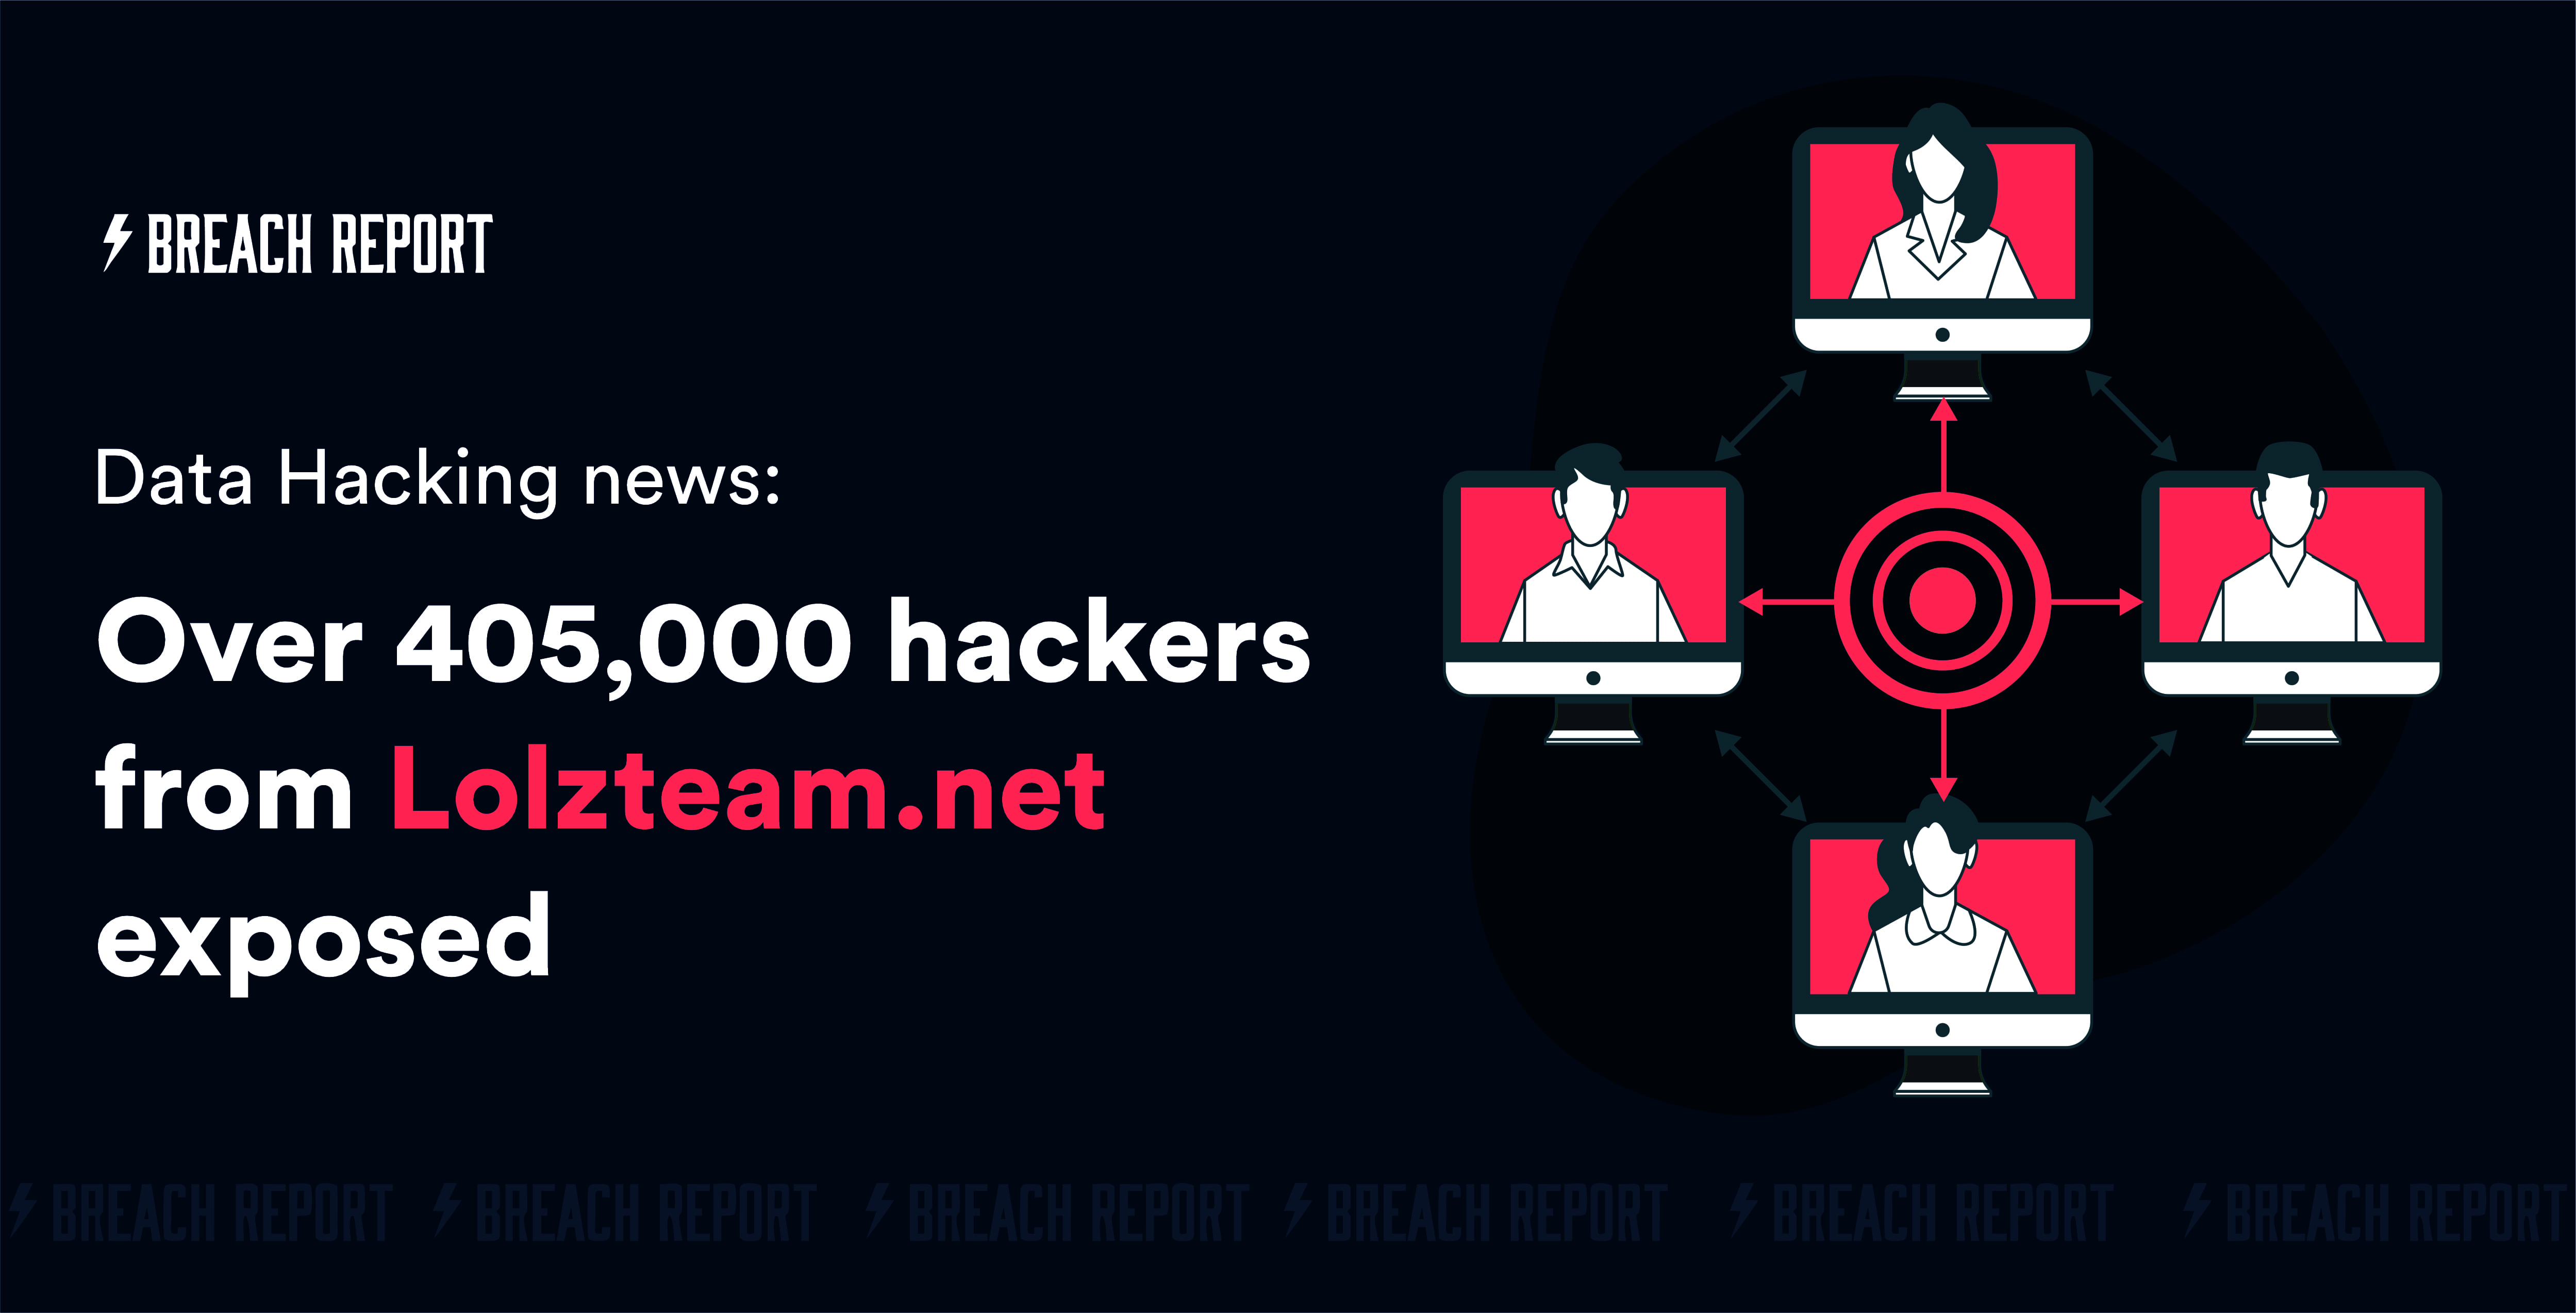 data hacking news lolzteam data breach breach report email compromised cyber security news hackers